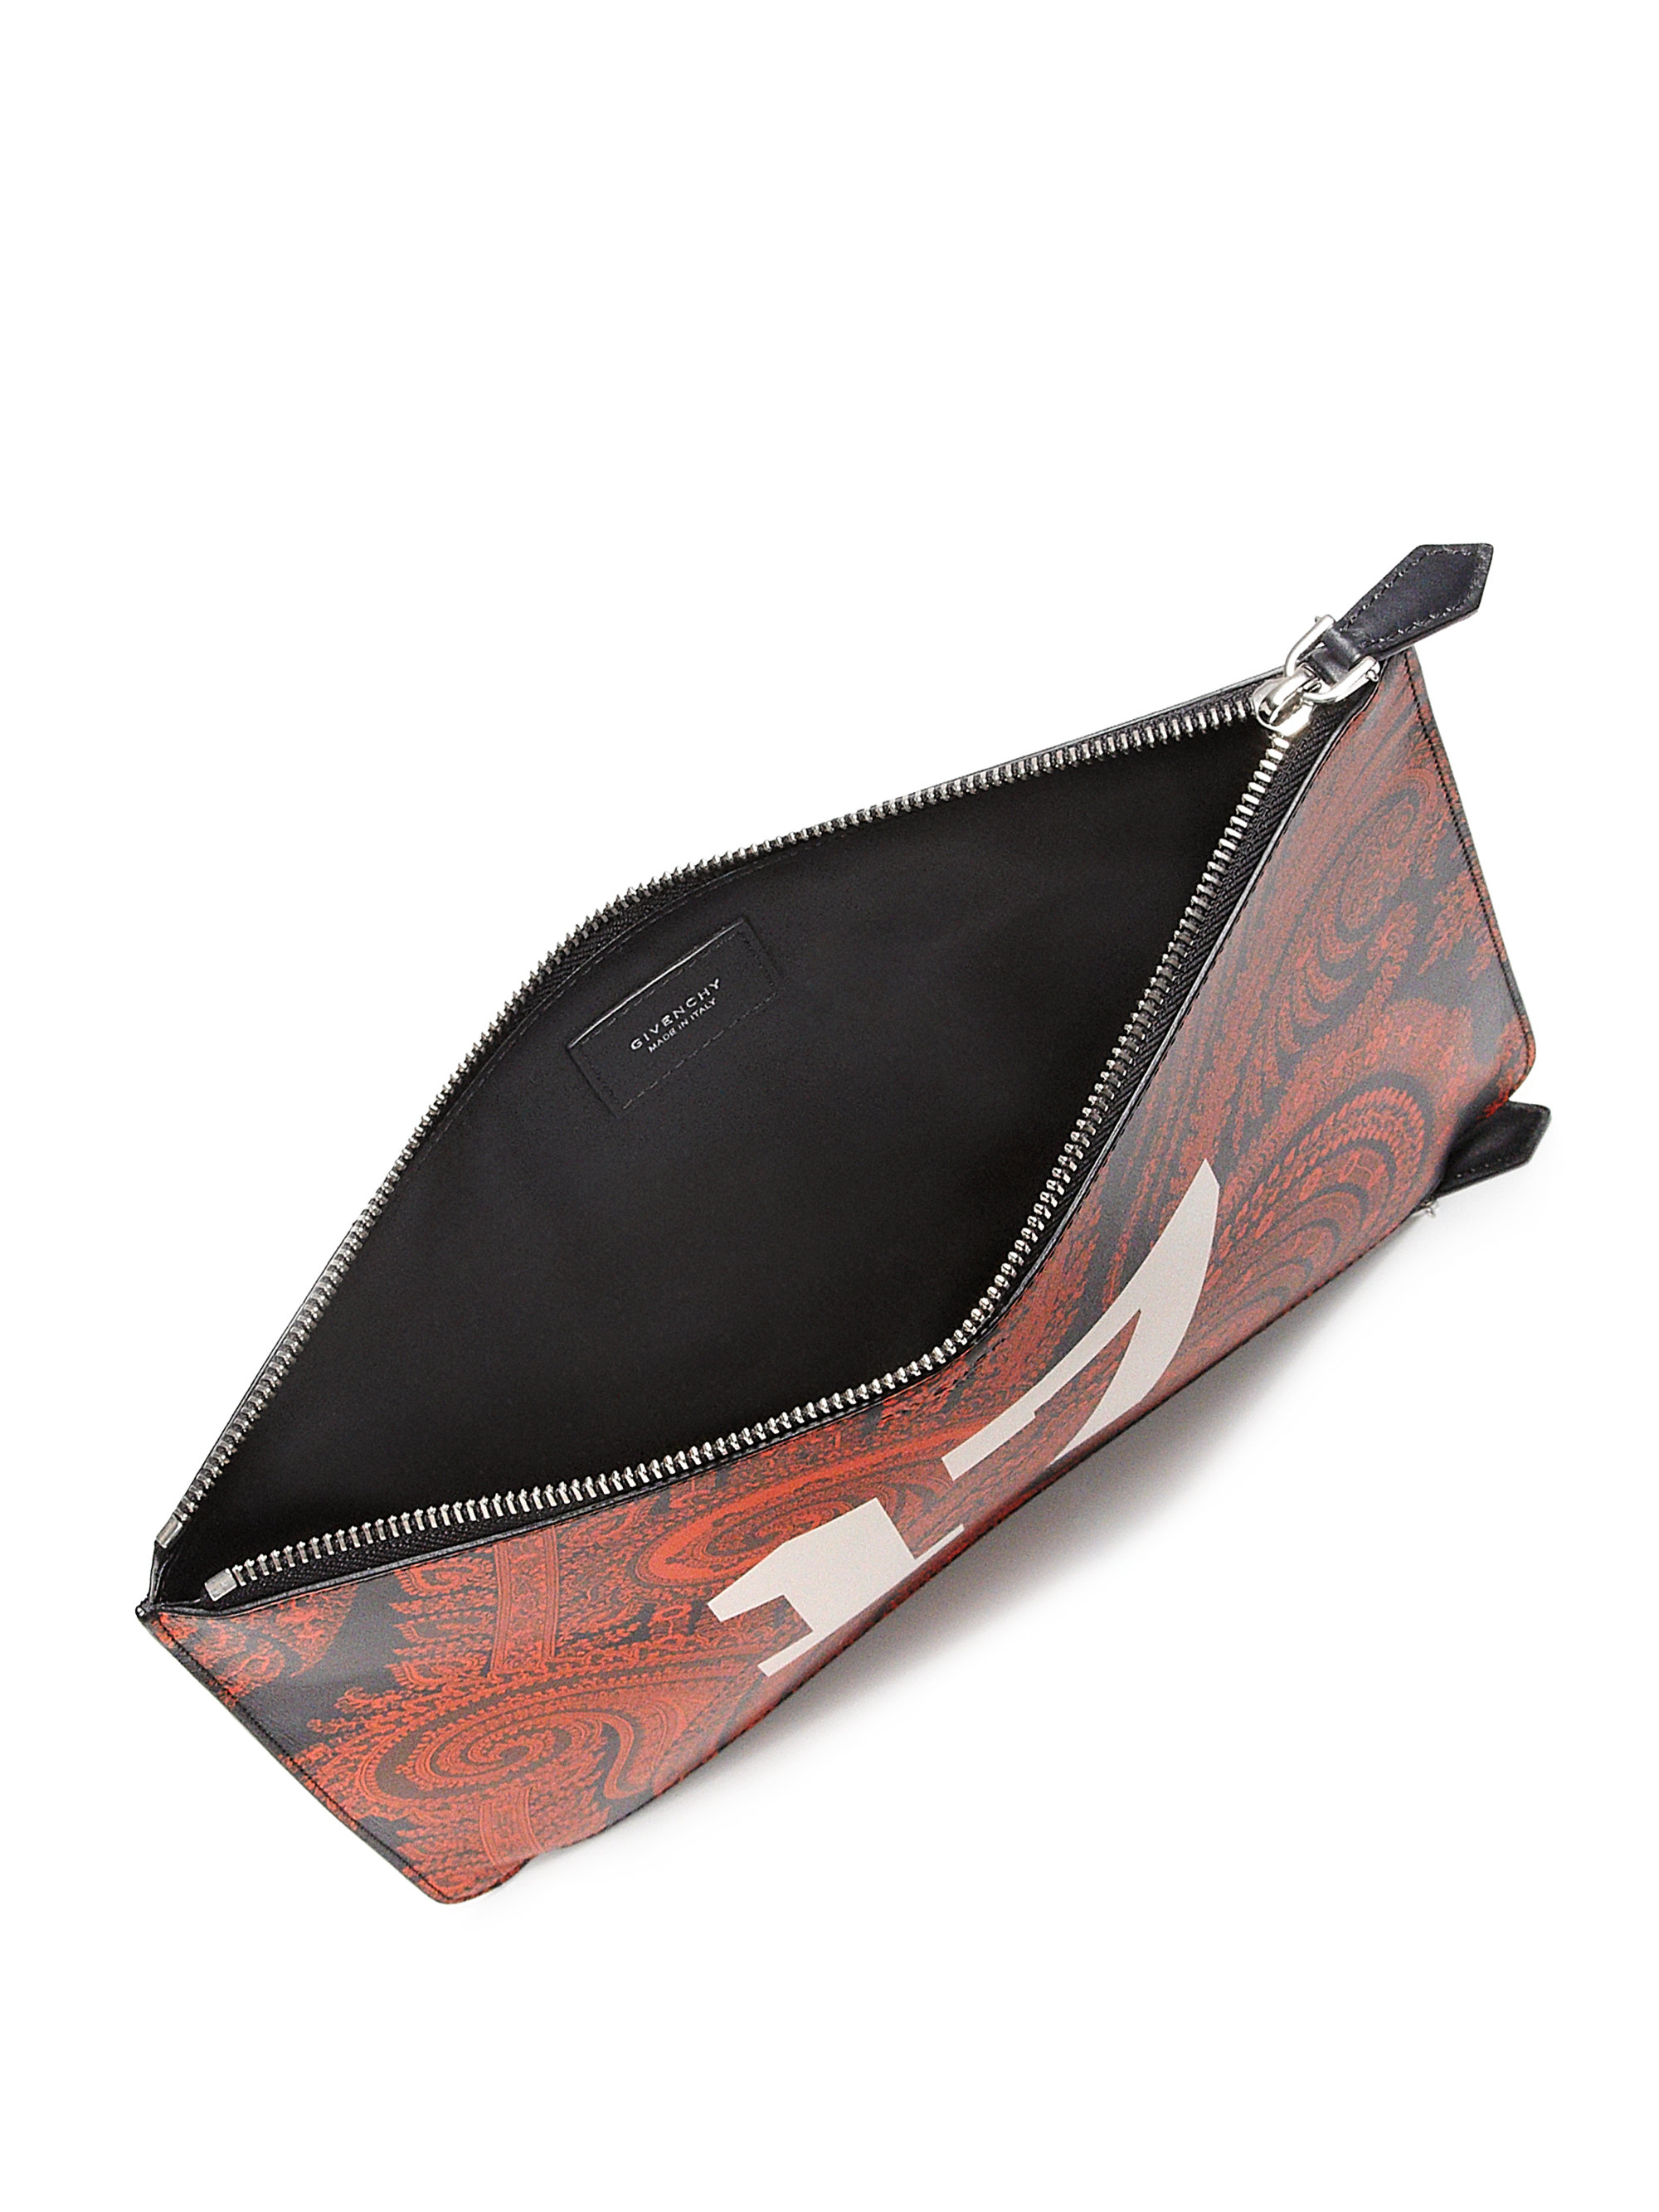 Givenchy Double-Zip Paisley Leather Pouch in Red (PAISLEY-MULTI . c55cc1518bc8c